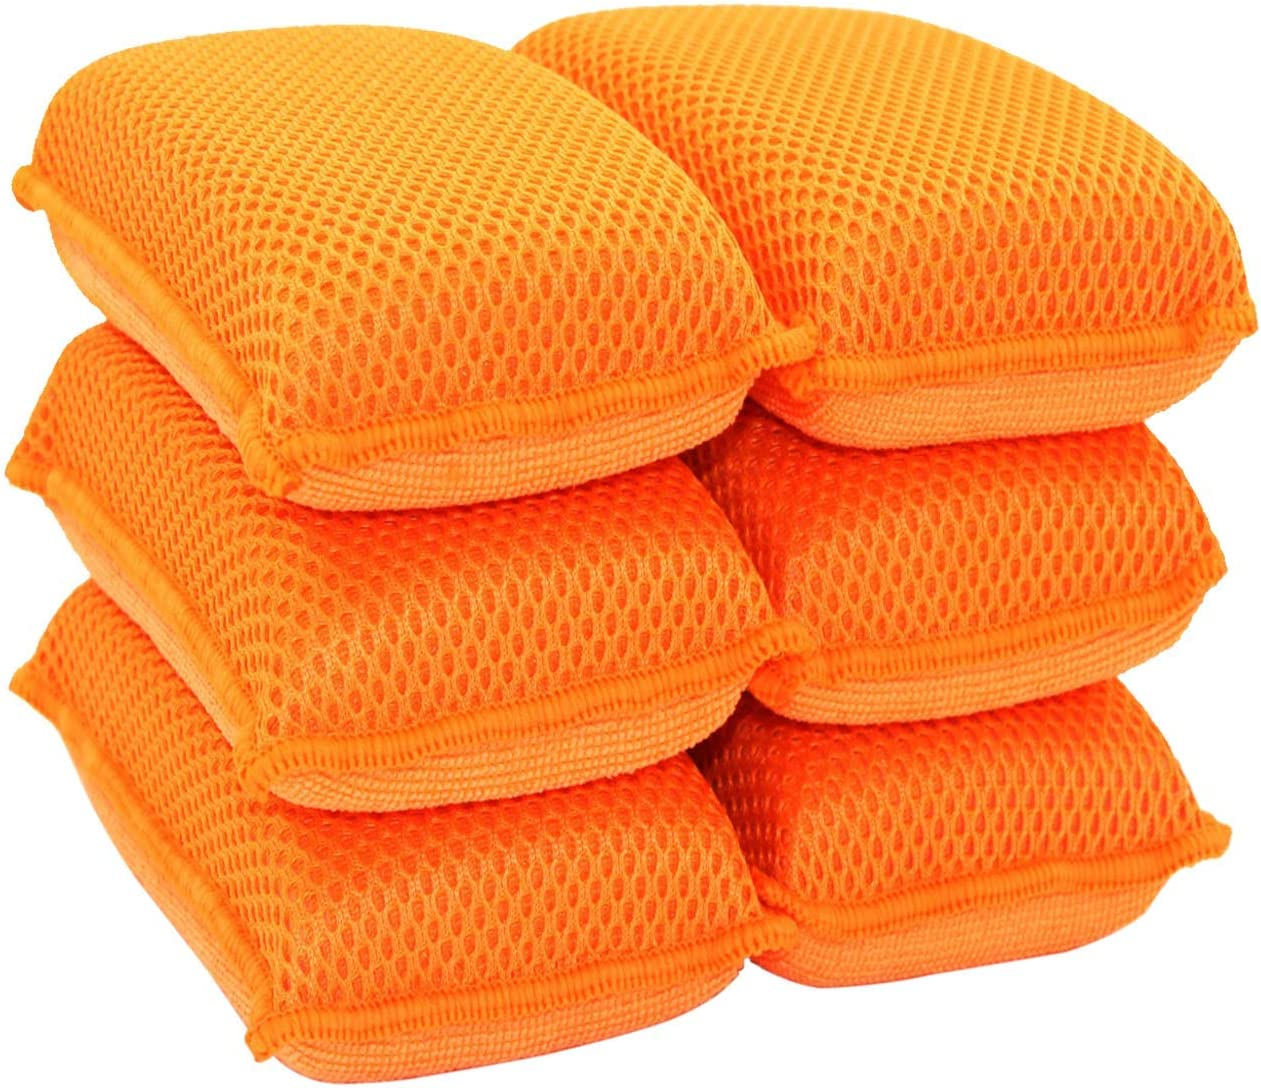 Miracle Microfiber Kitchen Sponge by Scrub-It (6 Pack) - Non-Scratch Heavy Duty Dishwashing Cleaning sponges- Machine Washable- (Orange)